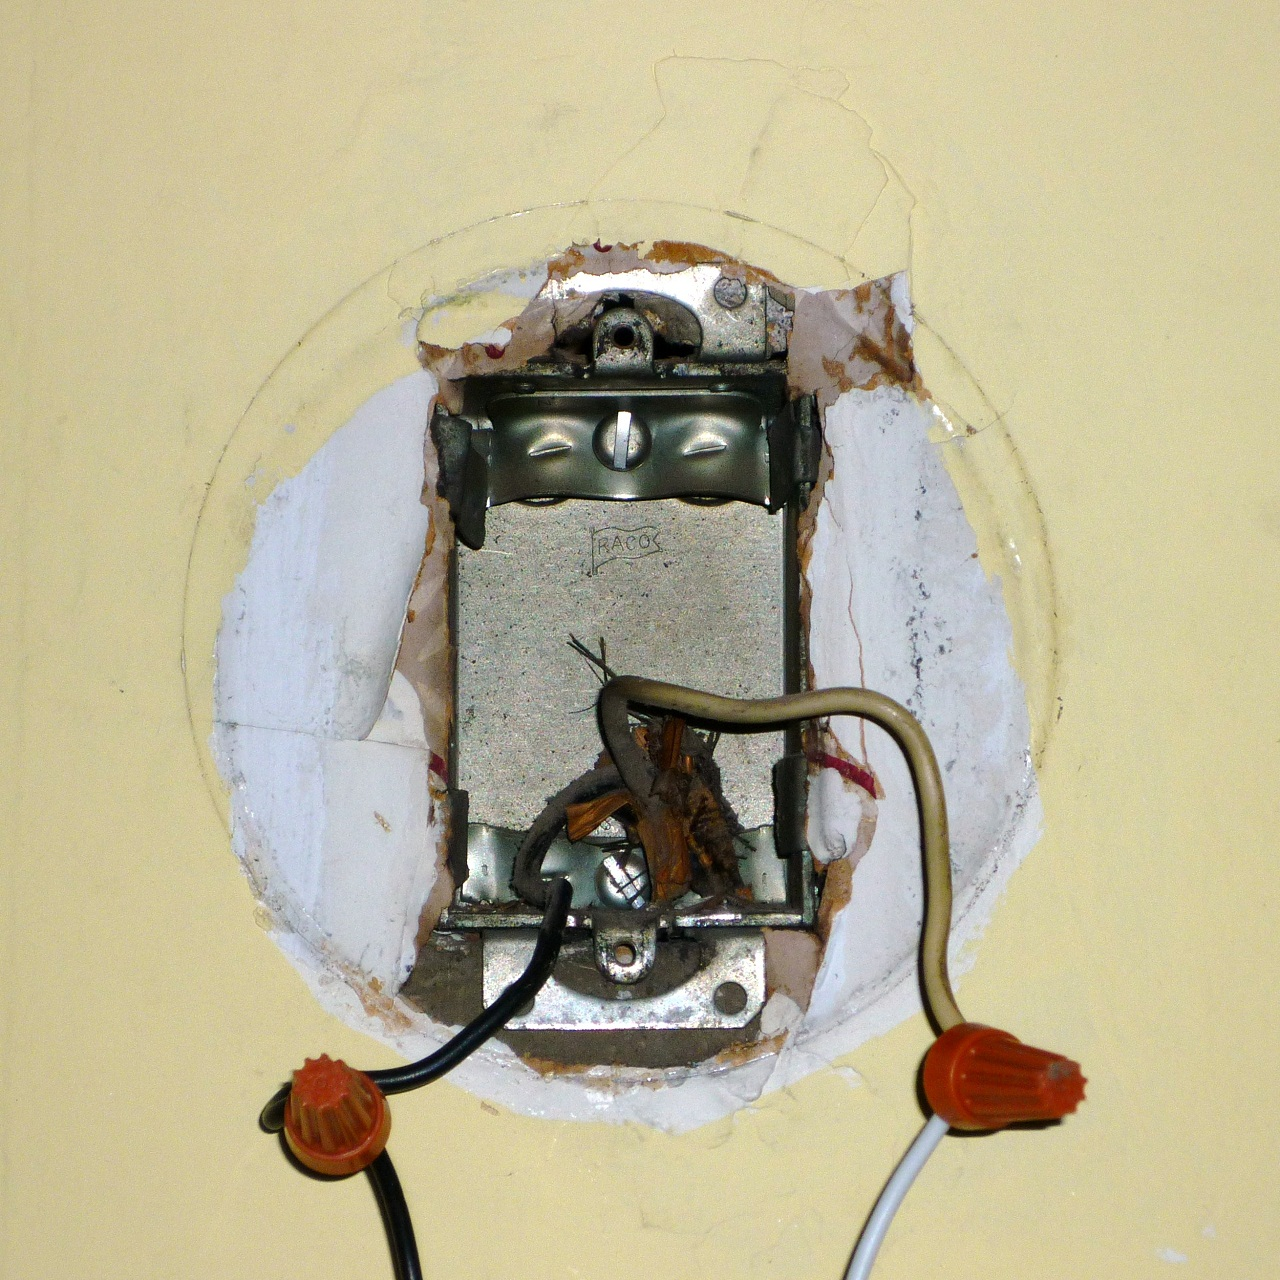 Electrical Fixtures: Let There Be Light: Installing Lighting Fixtures